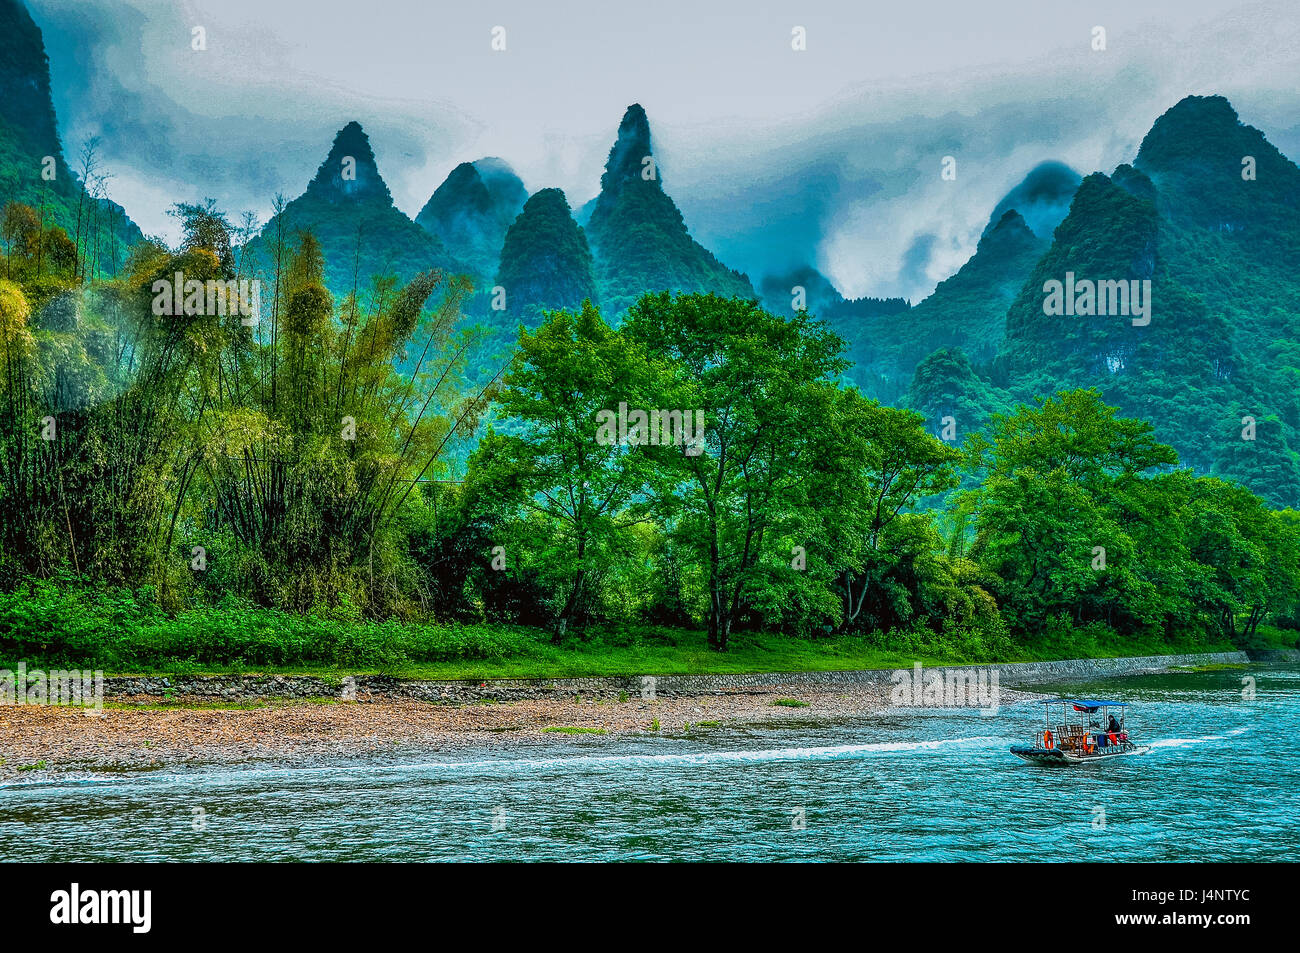 Karst mountains and Li River scenery in the mist Stock Photo